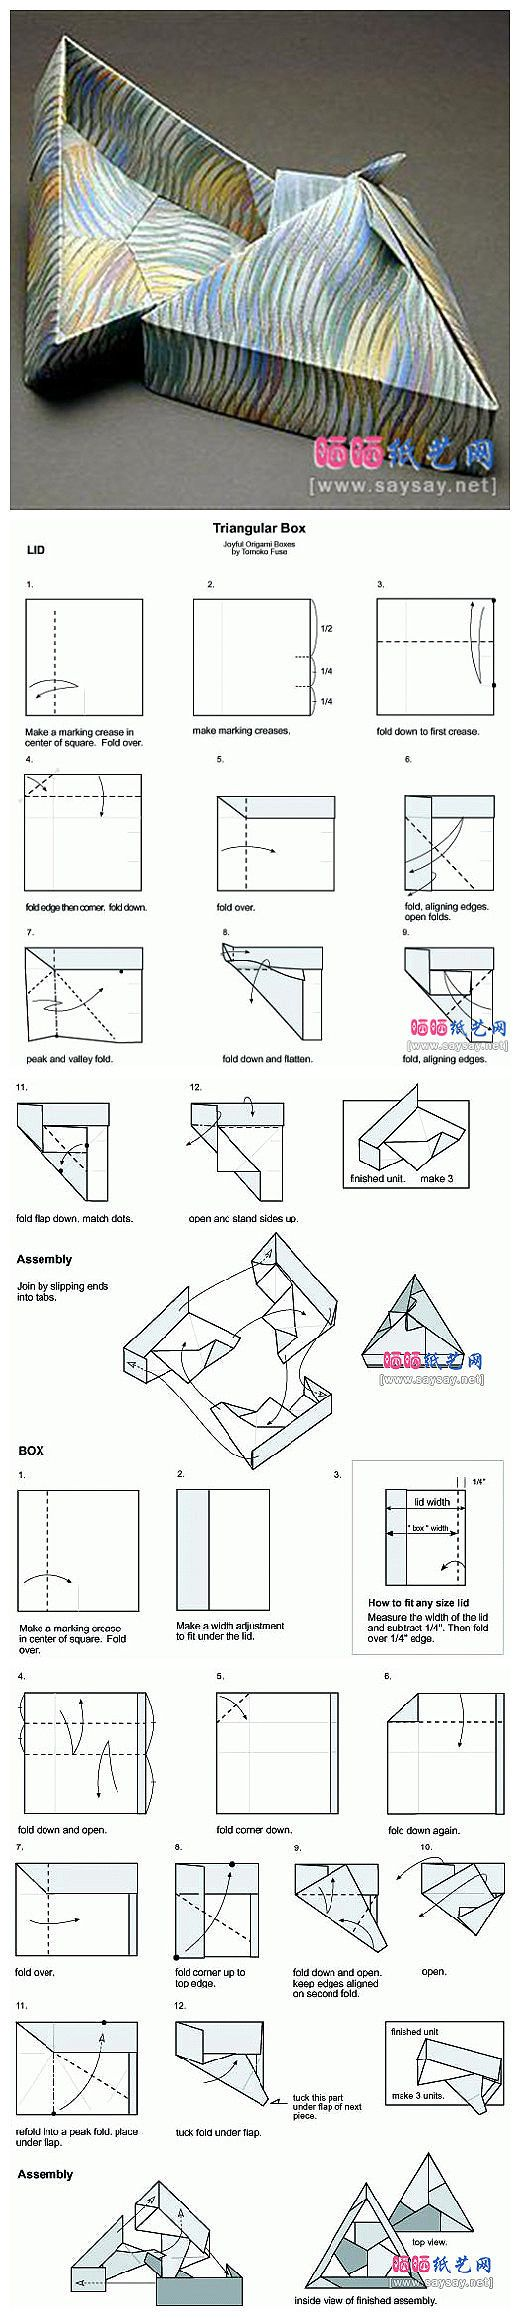 triangular origami box by tomoko fuse diagrams  [ 520 x 2318 Pixel ]